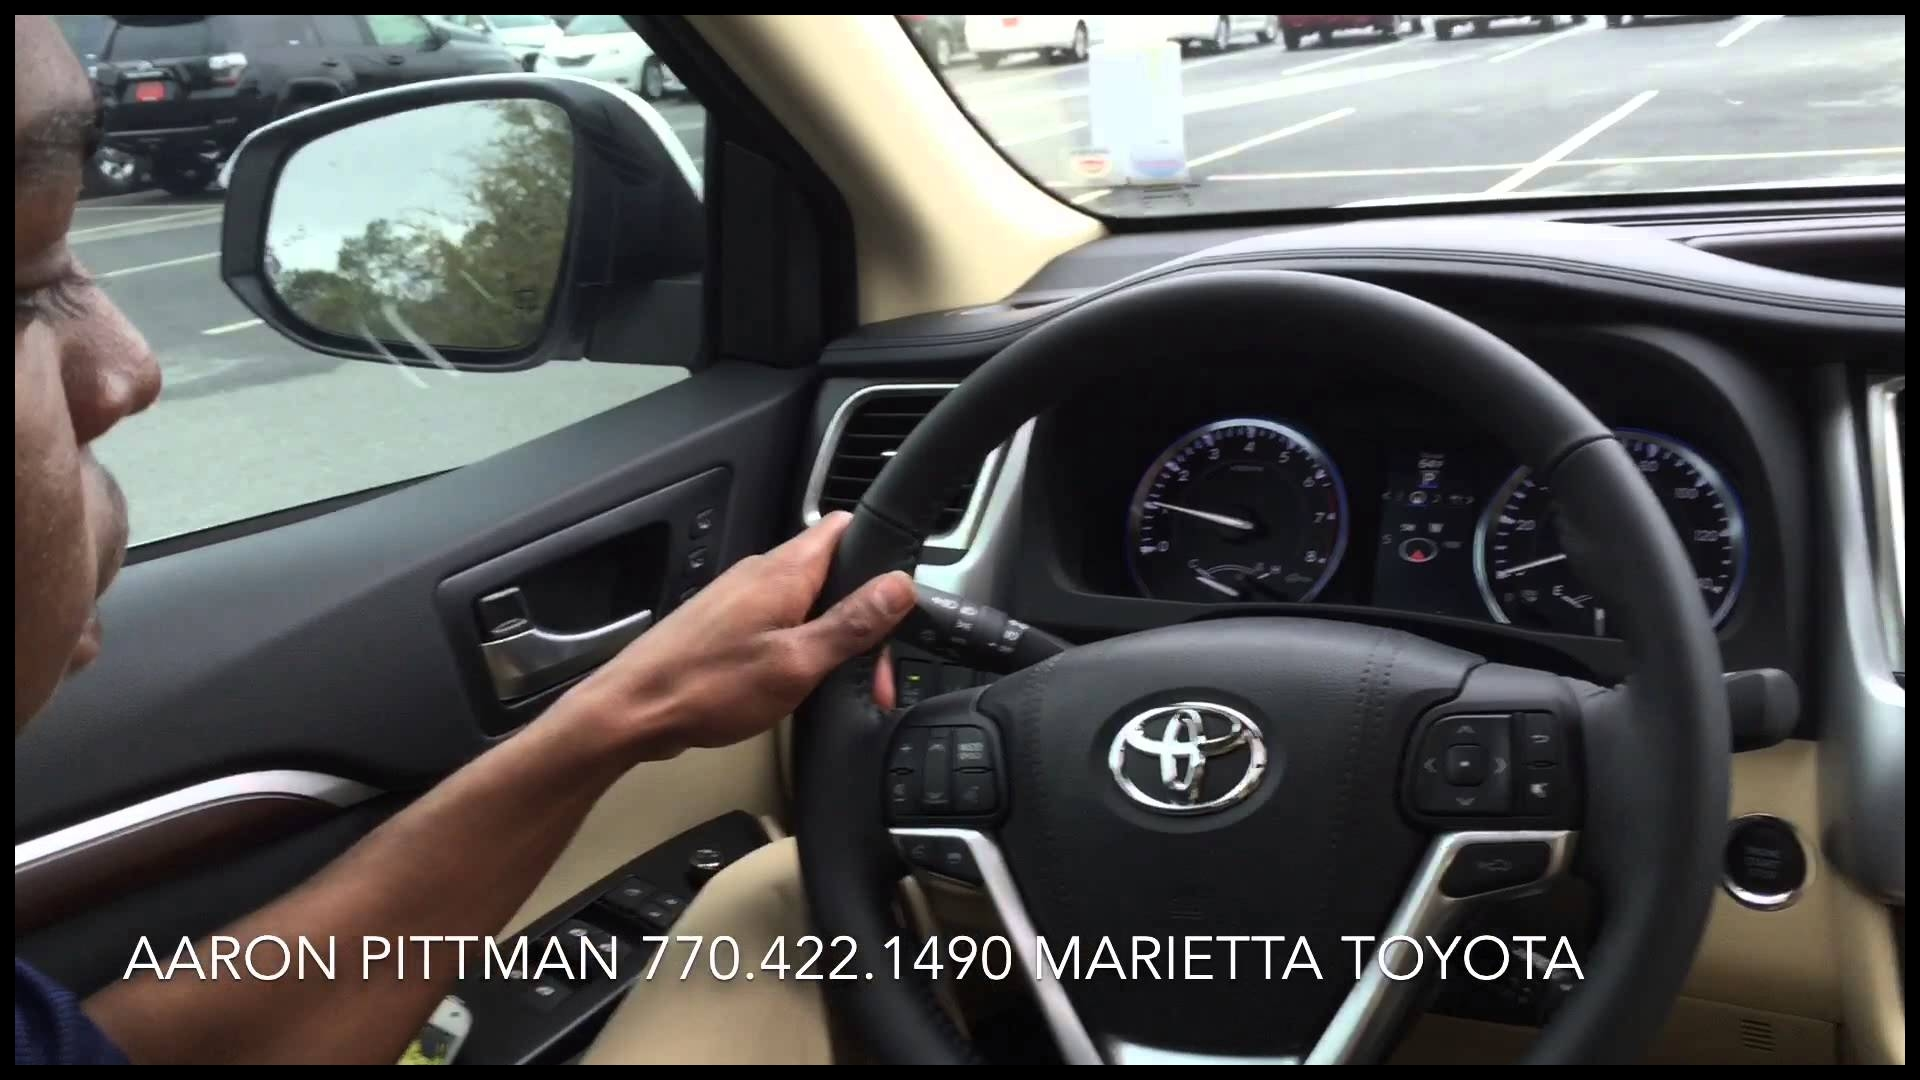 New 2015 Toyota Highlander Limited Platinum presented by Aaron Pittman at Marietta Toyota